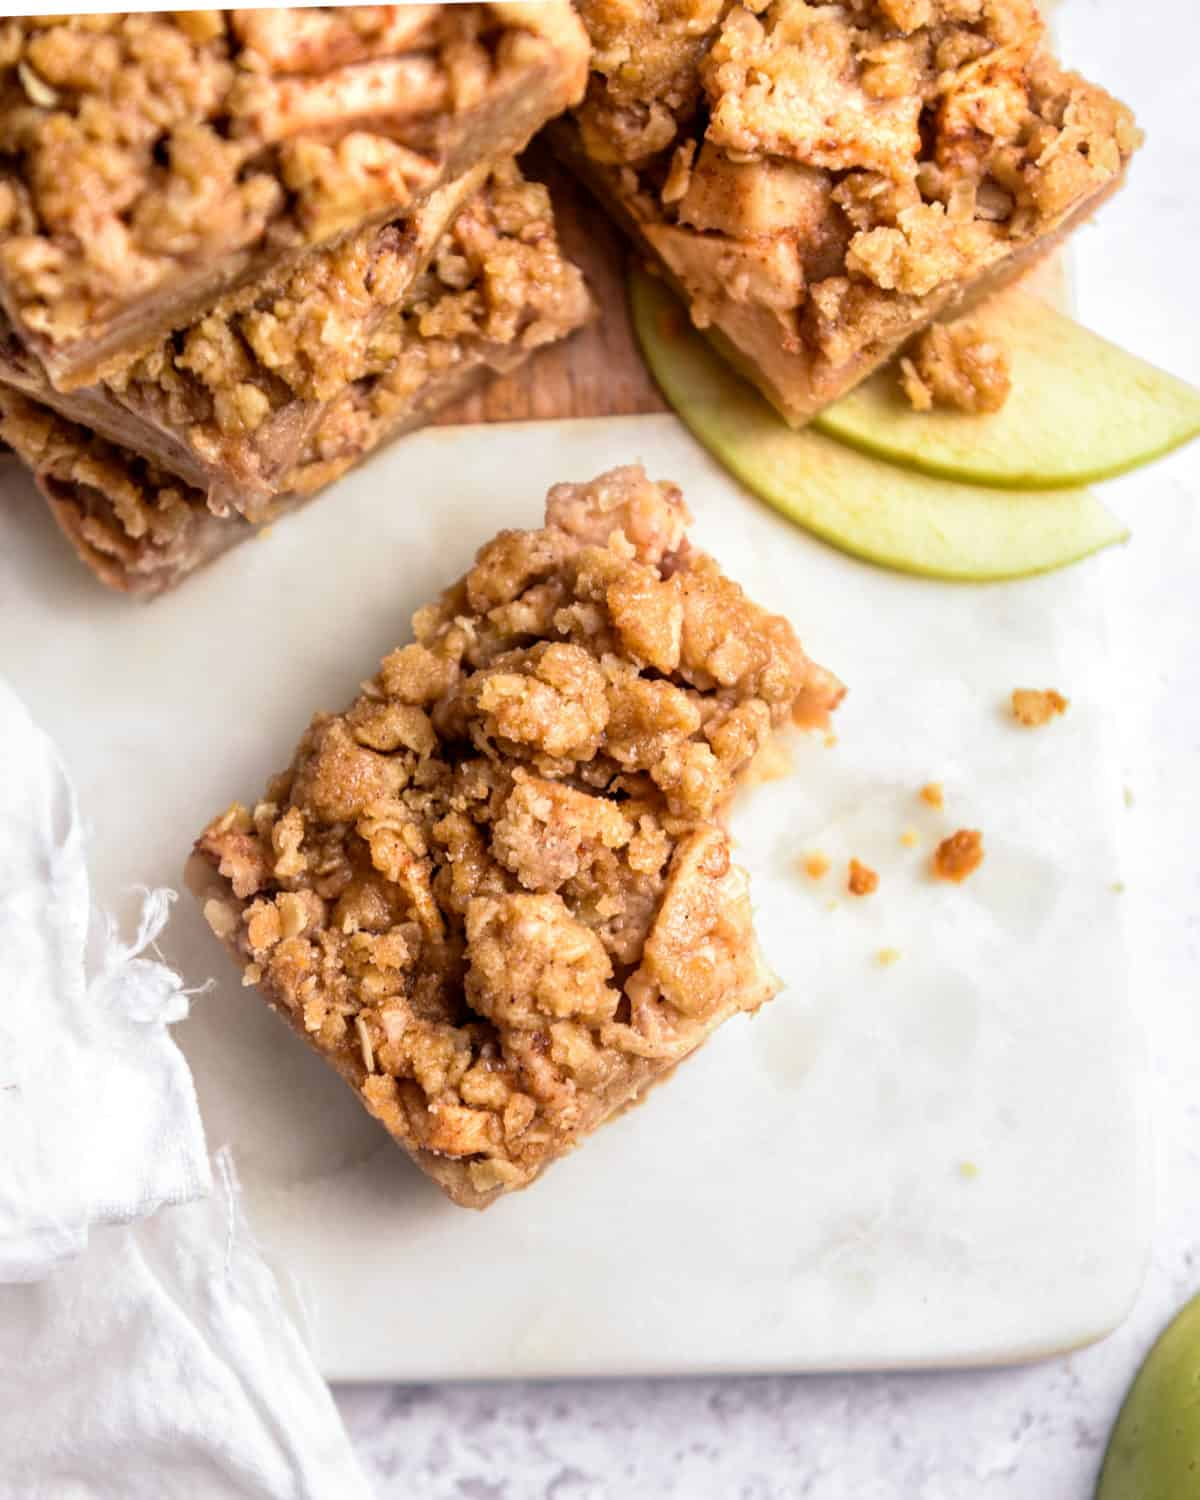 An apple crisp bar with a bite taken out of it and crumbs around it.